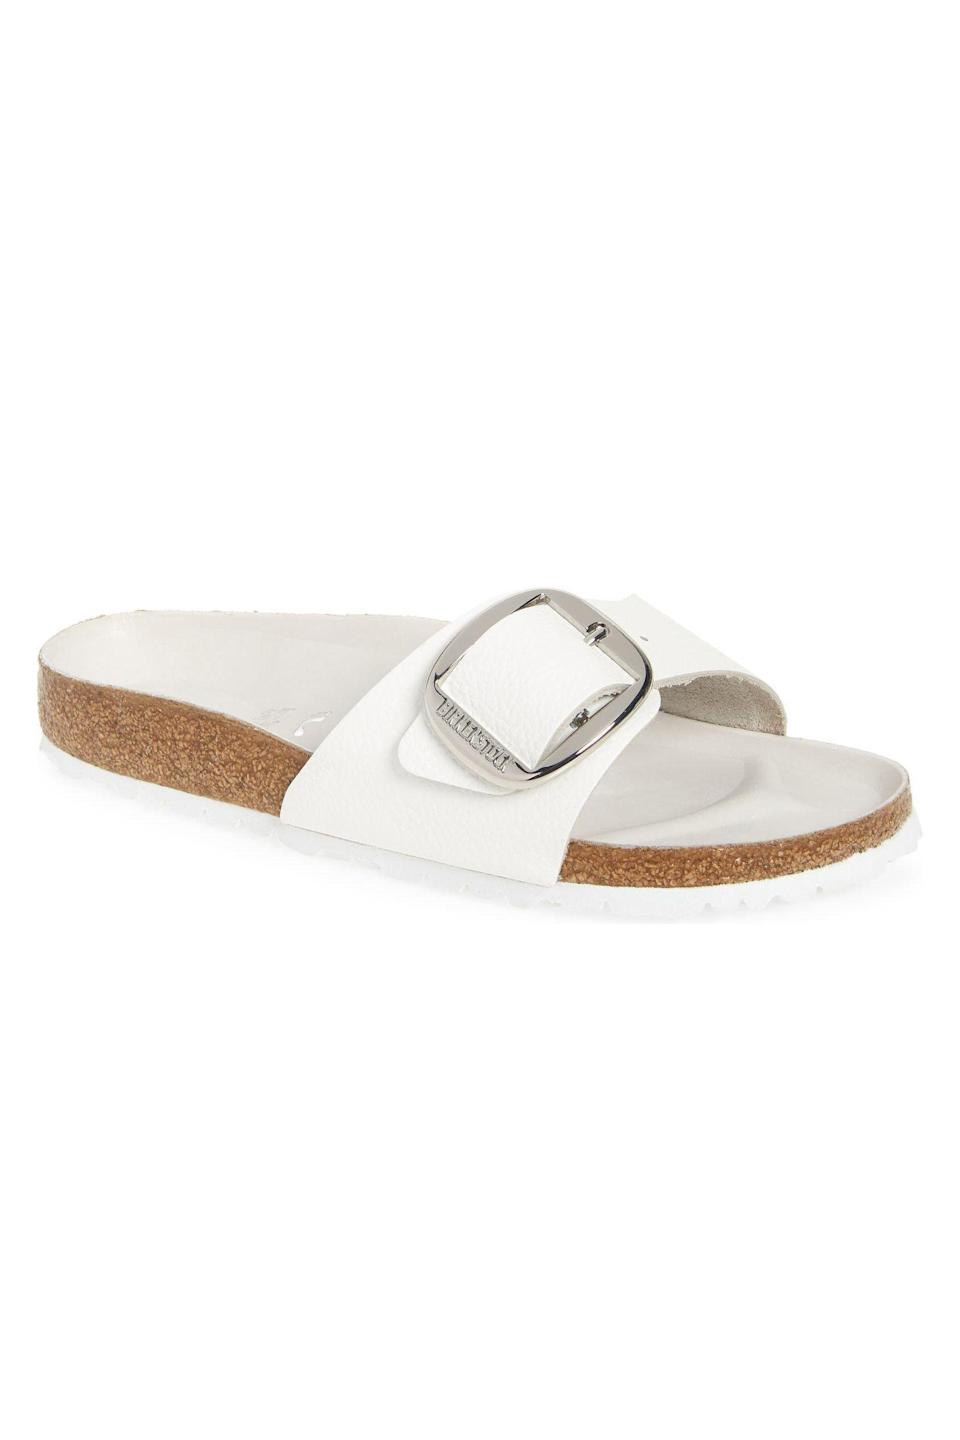 """<p><strong>Birkenstock</strong></p><p>nordstrom.com</p><p><strong>$129.95</strong></p><p><a href=""""https://go.redirectingat.com?id=74968X1596630&url=https%3A%2F%2Fwww.nordstrom.com%2Fs%2Fbirkenstock-madrid-big-buckle-slide-sandal-women%2F5759526&sref=https%3A%2F%2Fwww.marieclaire.com%2Ffashion%2Fg27205502%2Fcomfortable-walking-sandals-women%2F"""" rel=""""nofollow noopener"""" target=""""_blank"""" data-ylk=""""slk:SHOP IT"""" class=""""link rapid-noclick-resp"""">SHOP IT</a></p><p>For a sandal that you can just slip into and go on your merry way, try this white option from Birkenstock. The oversized buckle adds major fashion points to this comfortable shoe. </p>"""